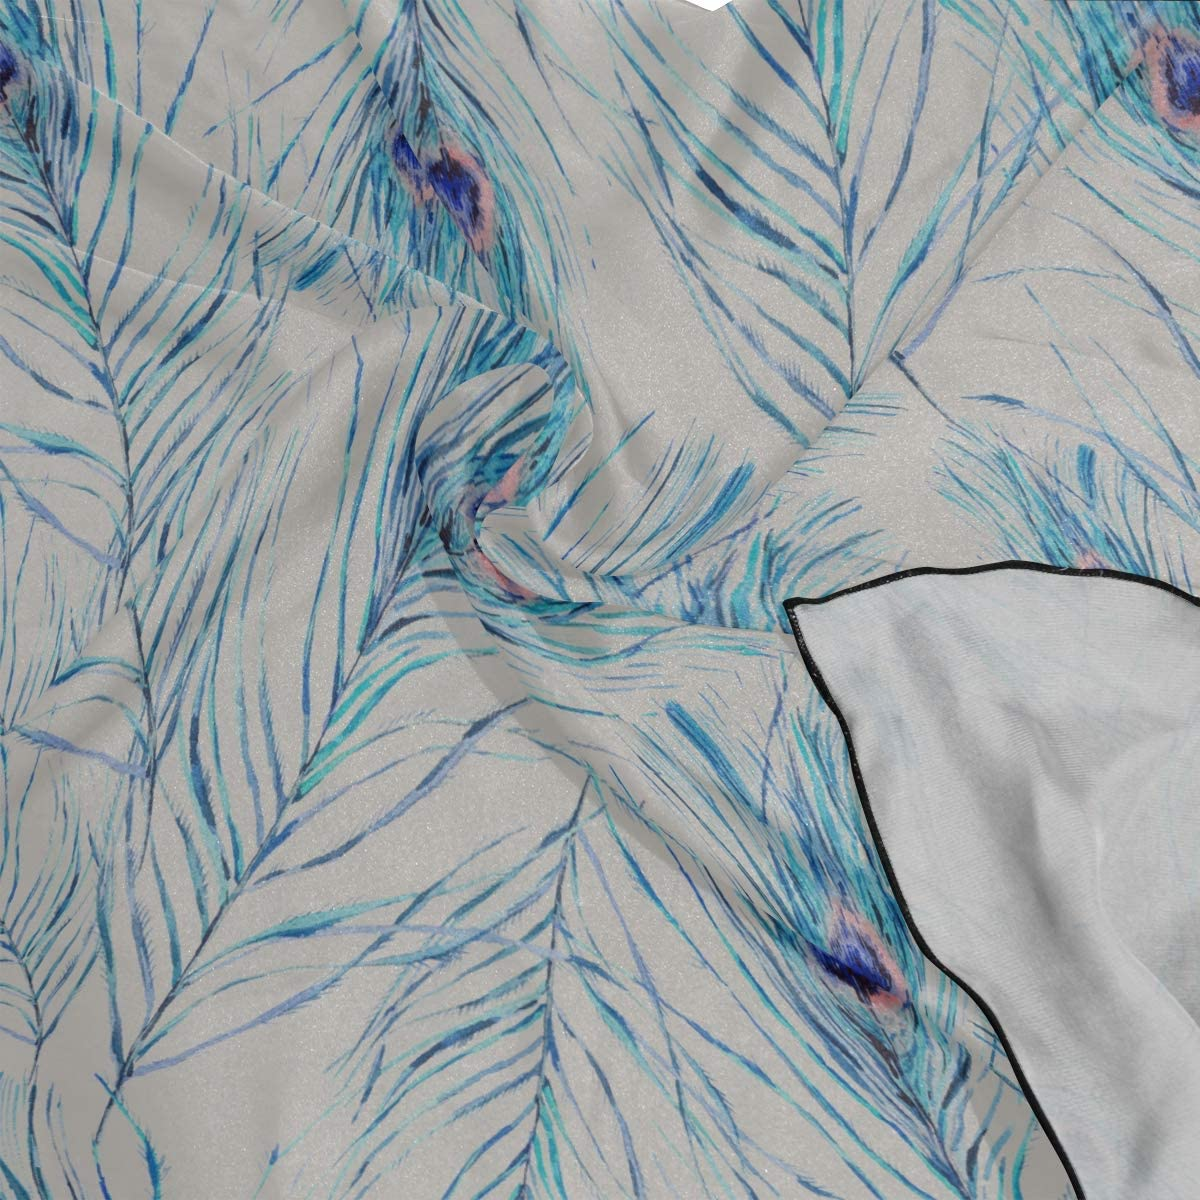 Soft Polyester Silk Head Scarf Men Fashion Print Cute Colorful Feather Square Scarfs For Women Womans Scarves Scarves Lightweight Multiple Ways Of Wearing Daily Decor